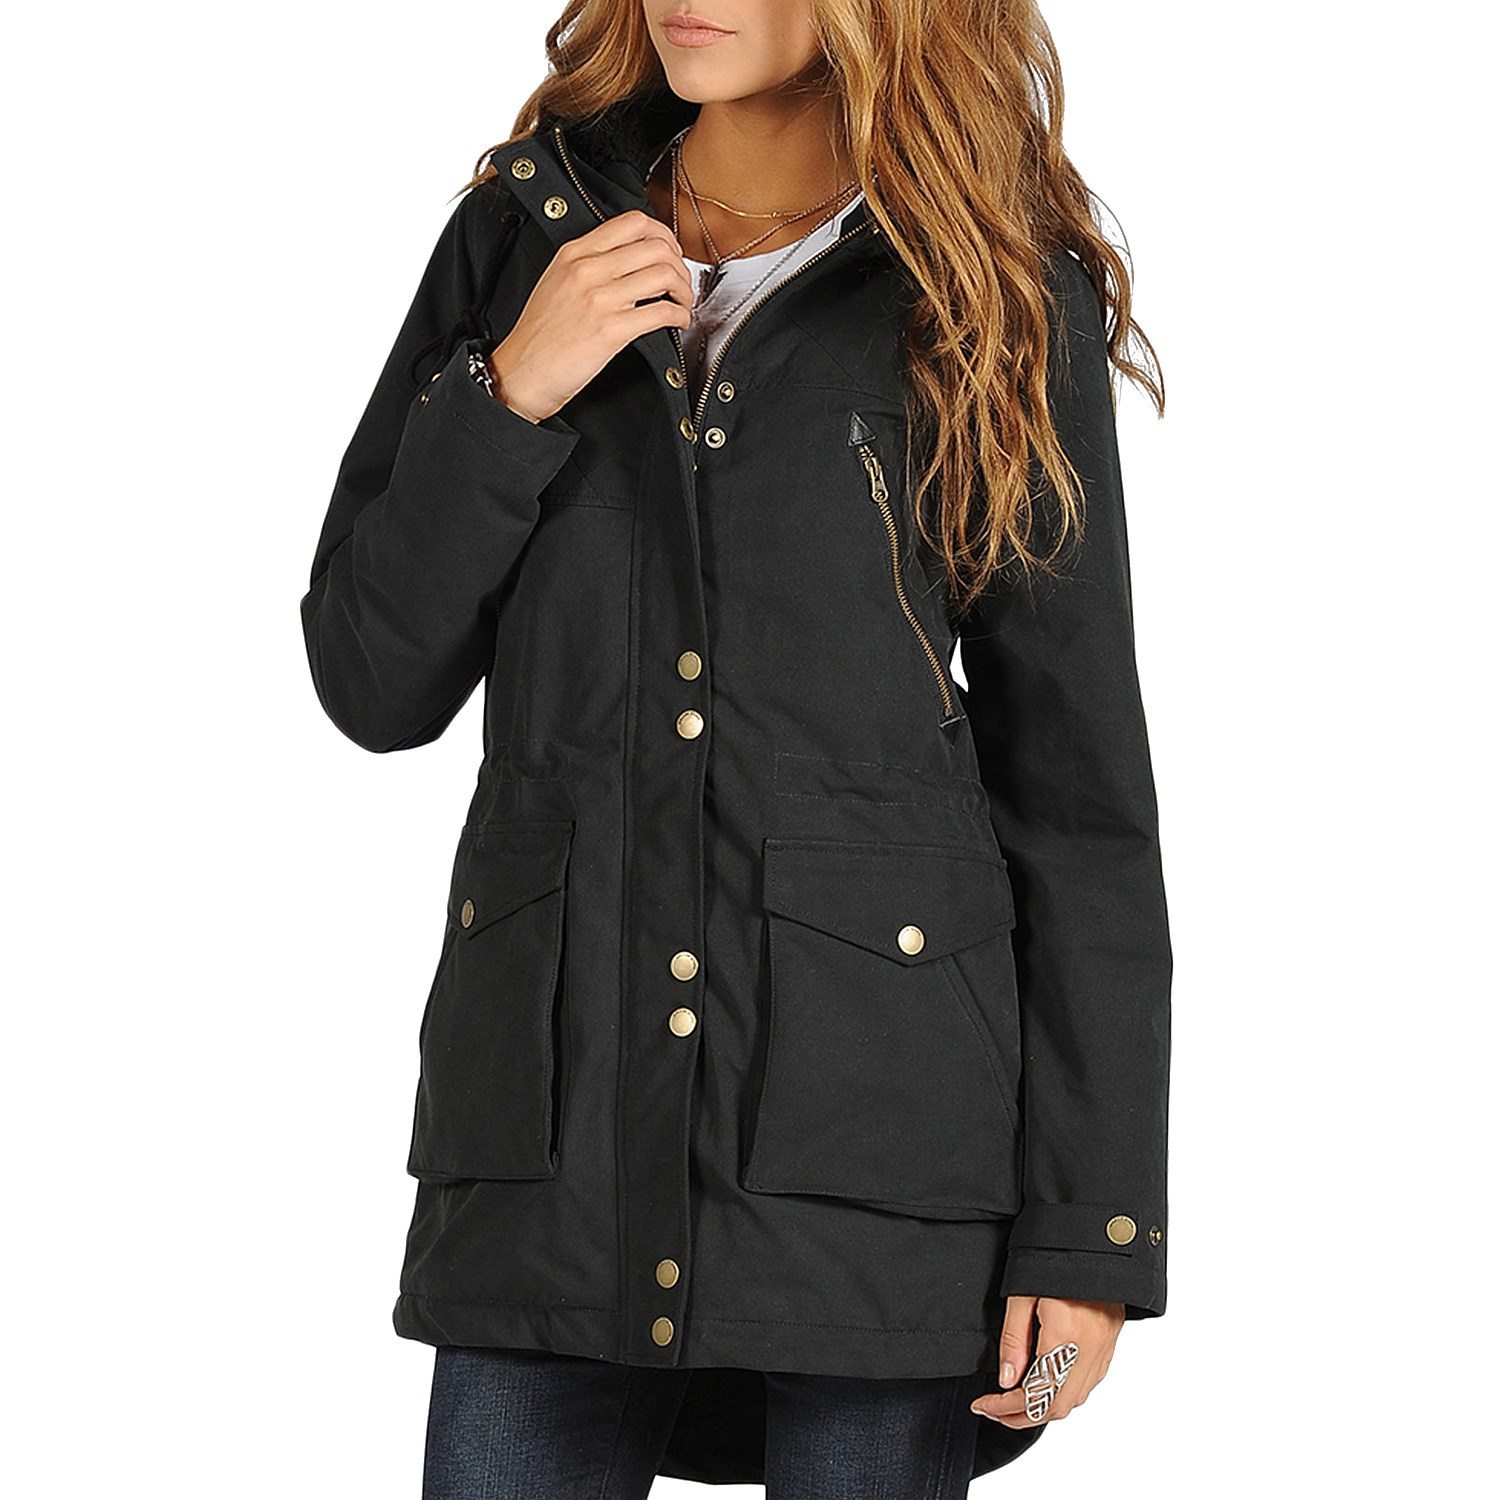 Online shopping for Clothing & Accessories from a great selection of Down & Parkas, Wool & Blends, Active & Performance, Leather & Faux Leather, Trench, Rain & Anoraks & more at everyday low prices.